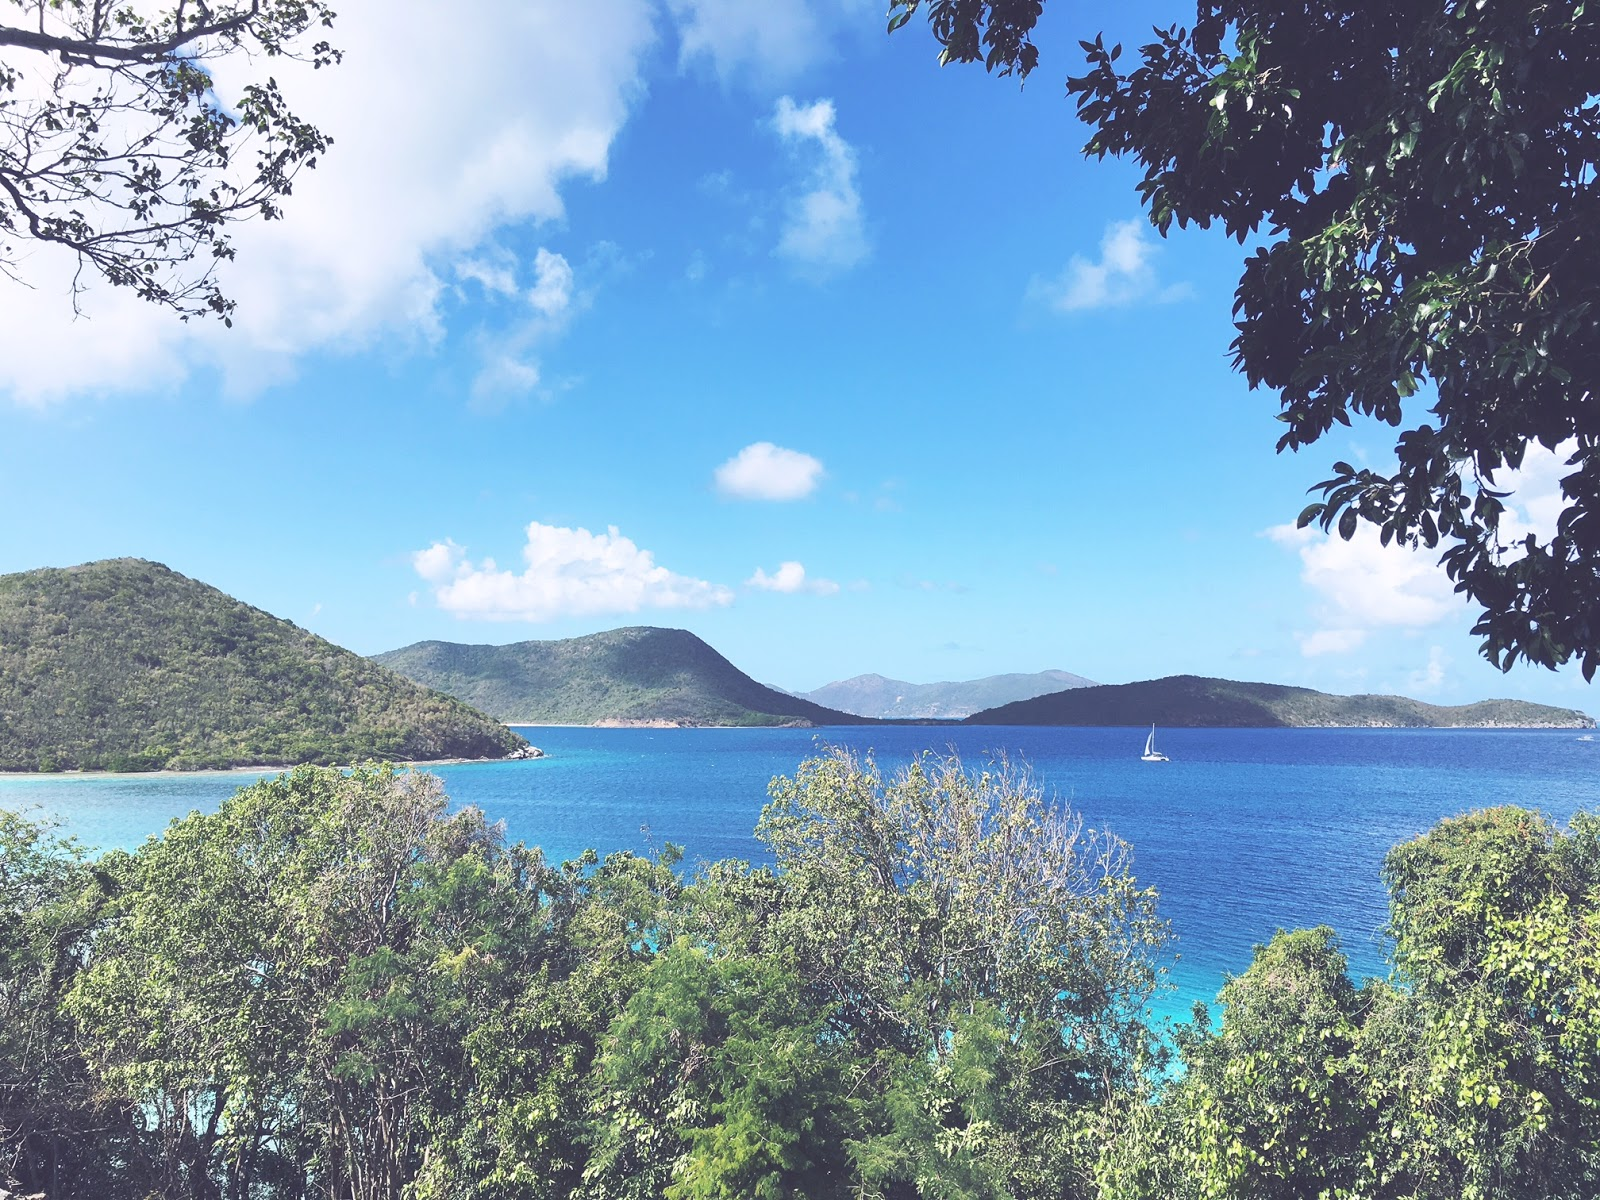 View from St. John turquoise Caribbean Sea waters, sail boat, green mountains